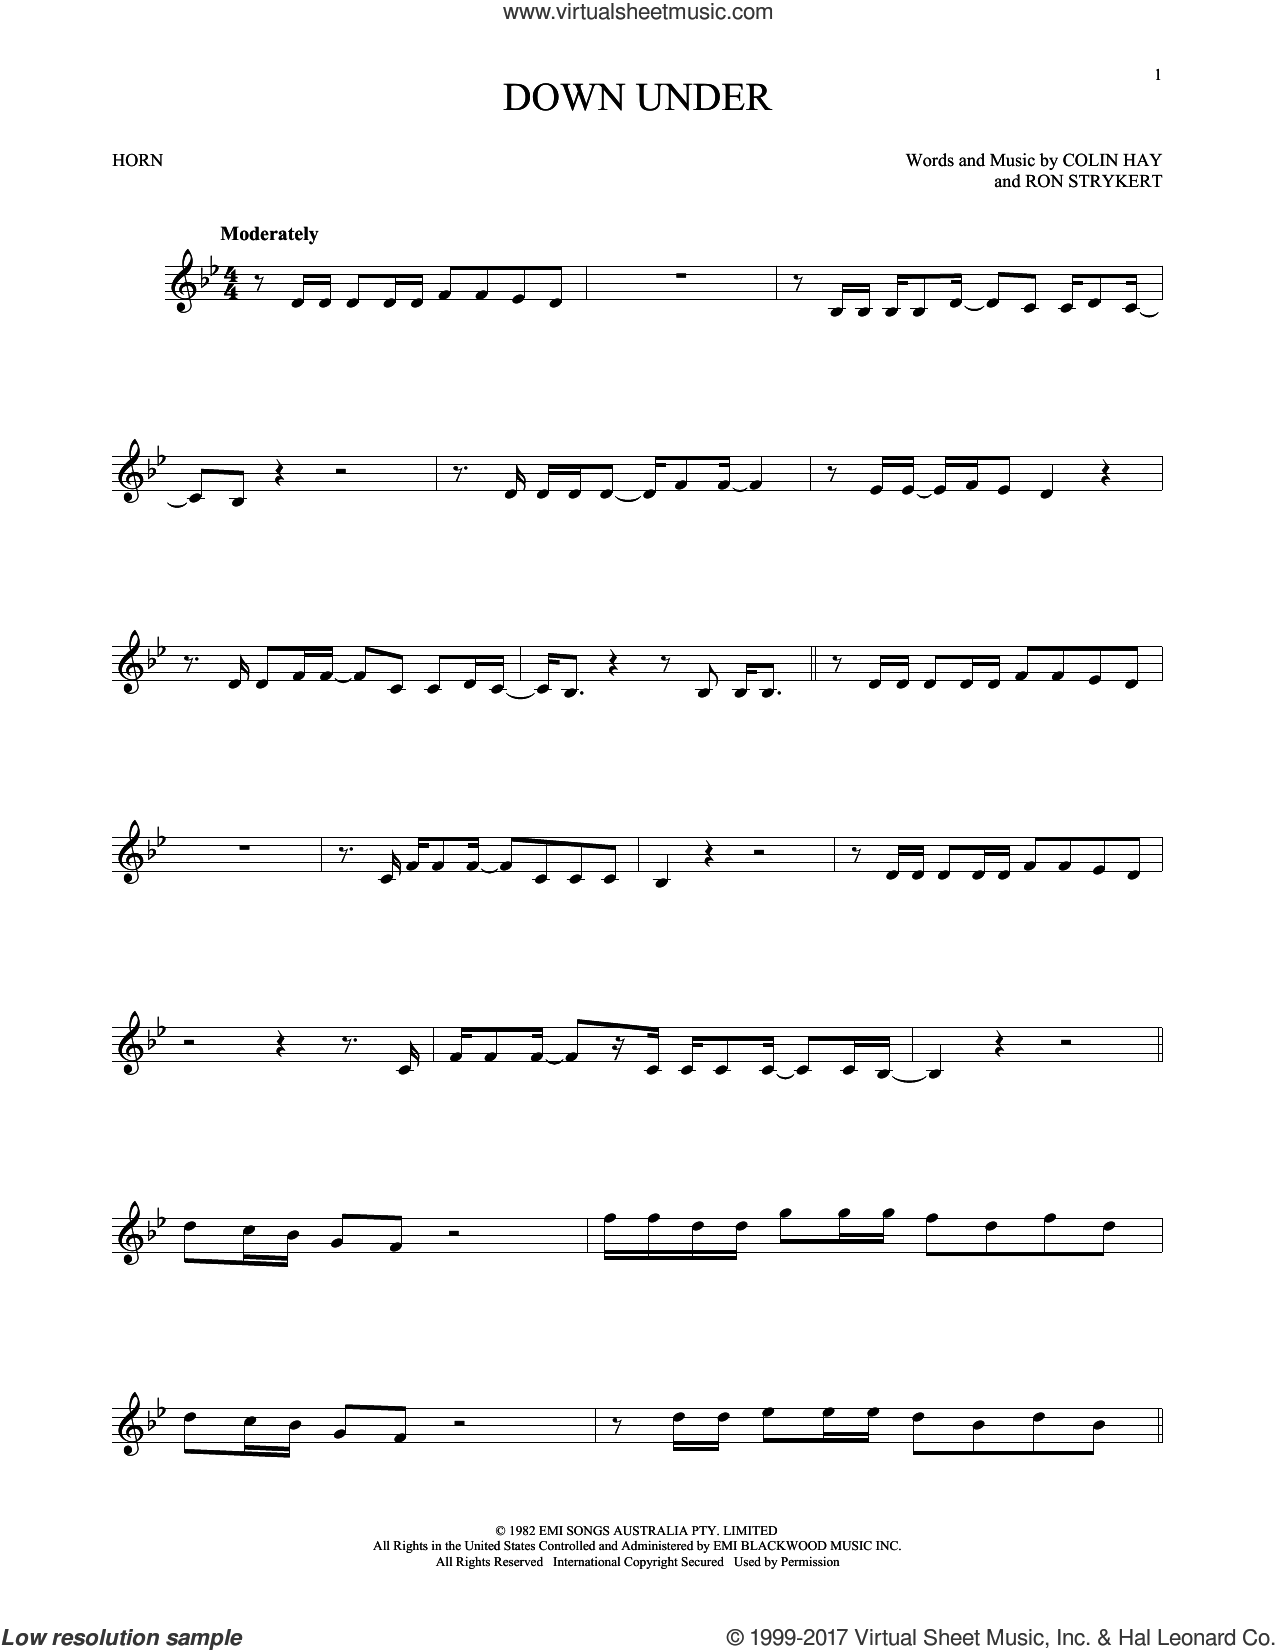 Down Under sheet music for horn solo by Men At Work. Score Image Preview.